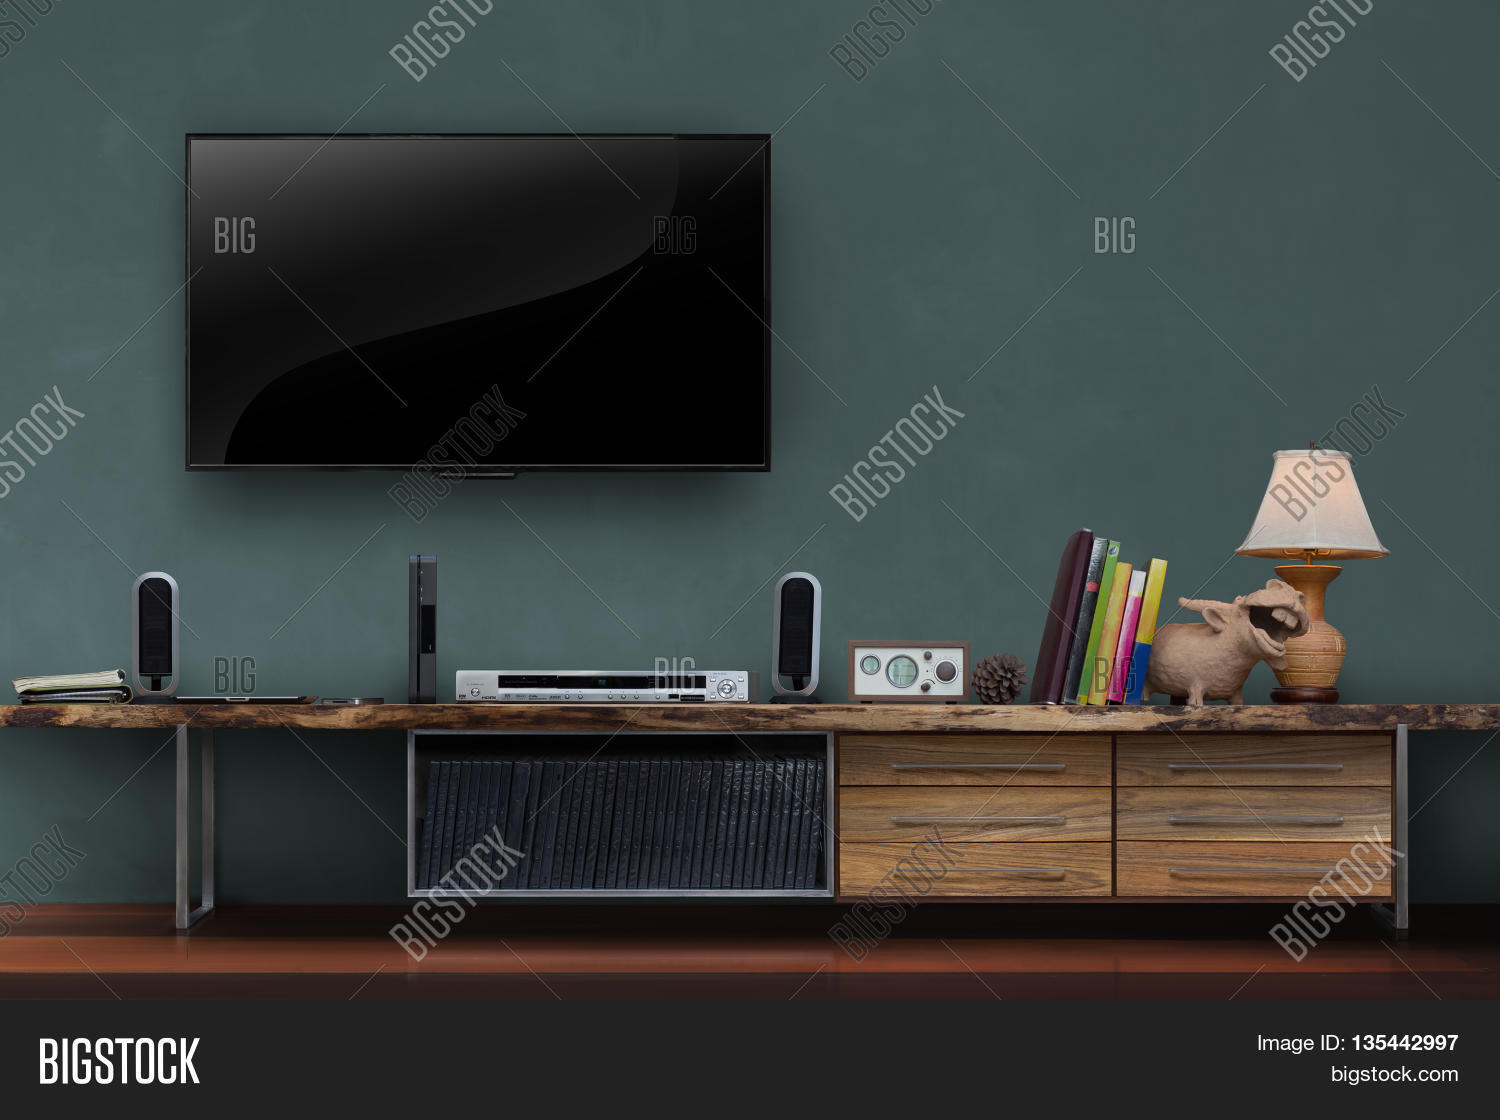 Living Room Led Tv On Image Photo Free Trial Bigstock